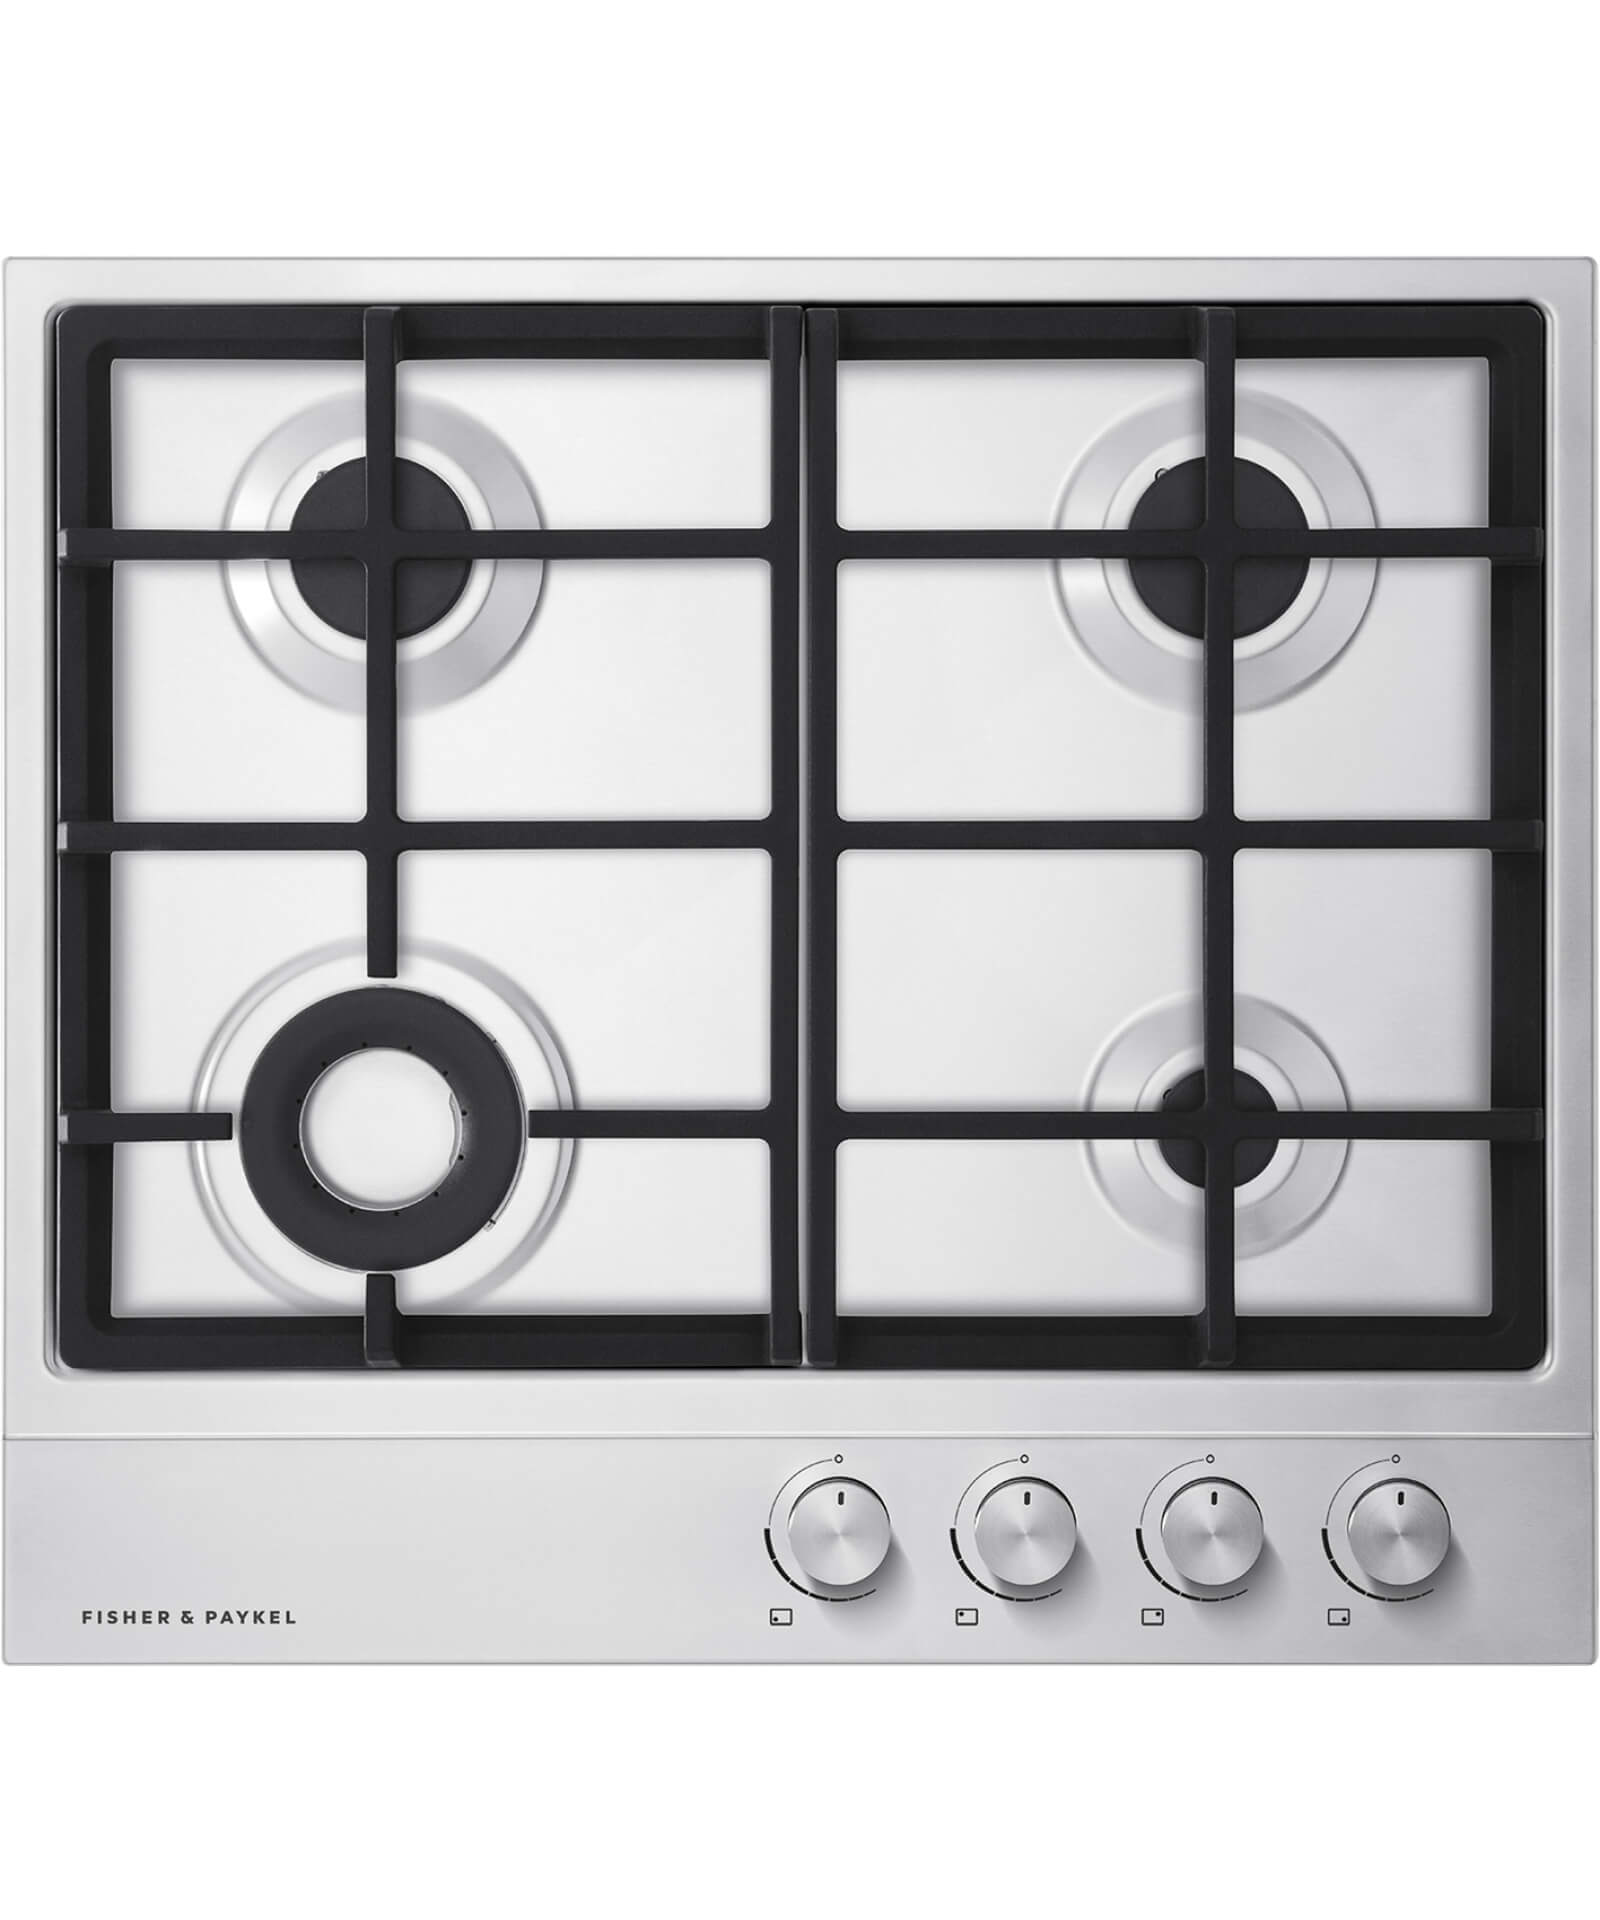 CG604DNGX1 - 60cm Gas on Steel Hob - 80802